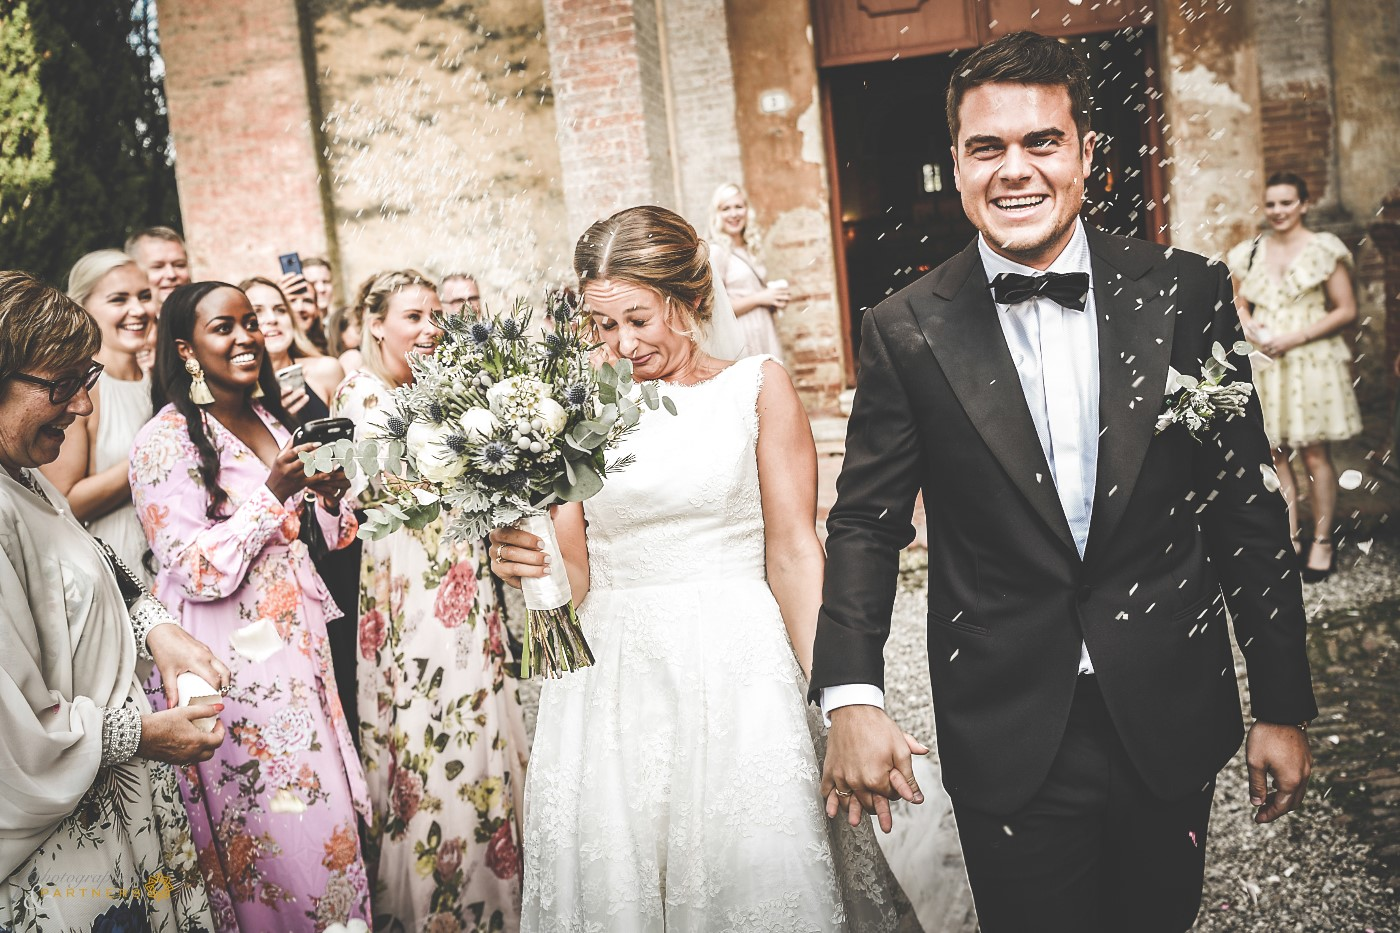 photographer_weddings_pienza_08.jpg